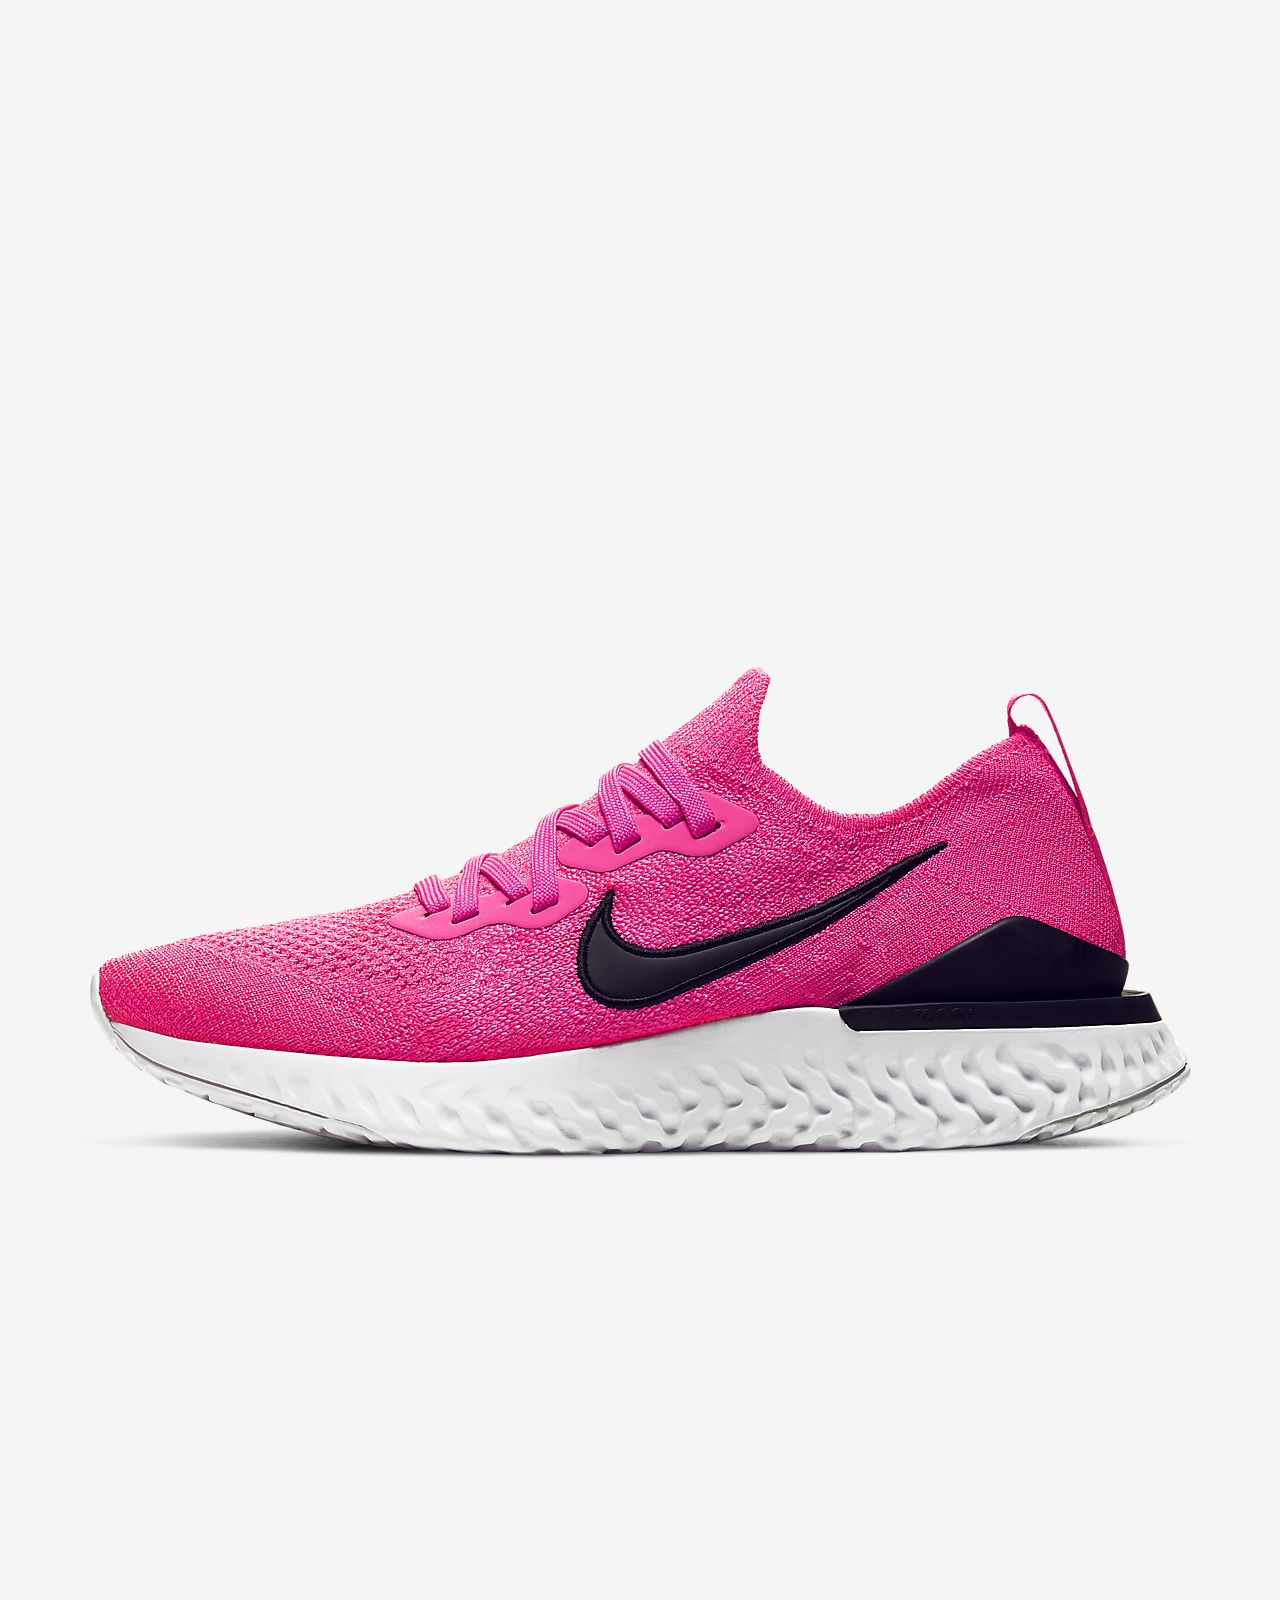 Nike Women's Nike Epic React Flyknit Running Shoe, Size 8.5 M Grey from NORDSTROM | People